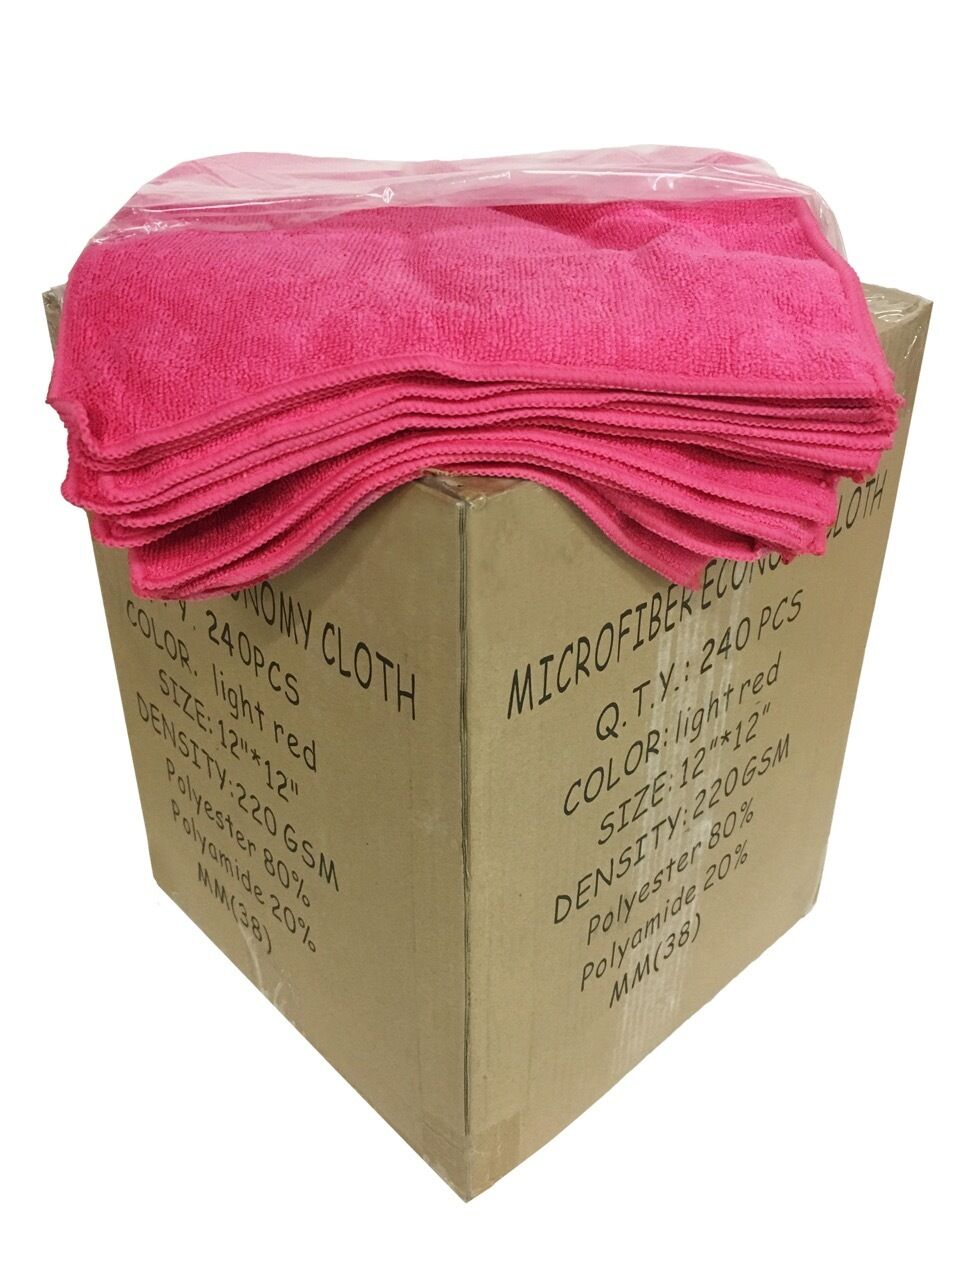 240 Case 12 x12  Economy Grade Microfiber Cleaning Cloths Auto 220GSM Pink